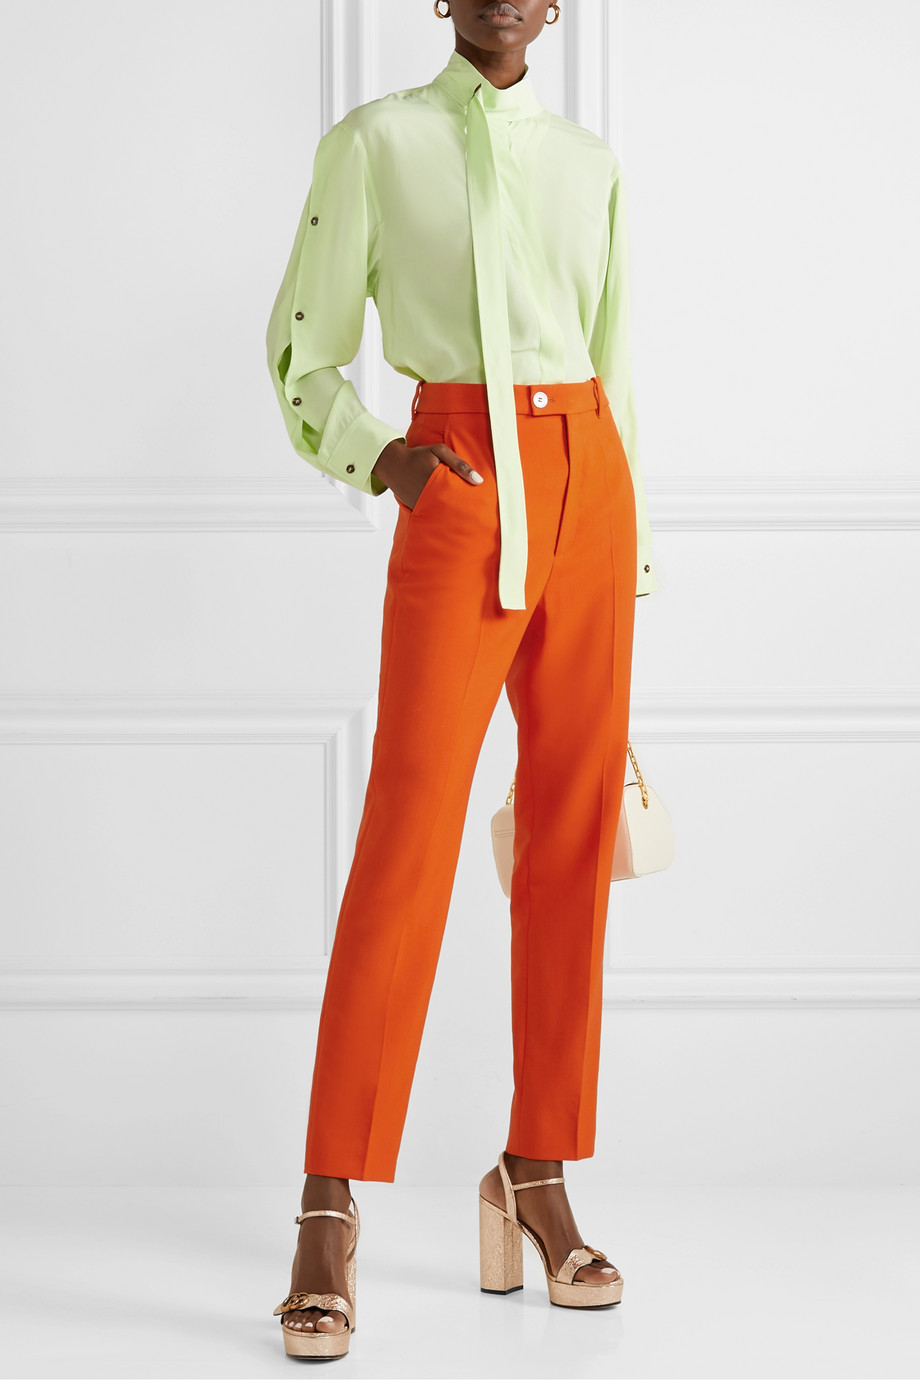 Gucci Wool-blend tapered pants